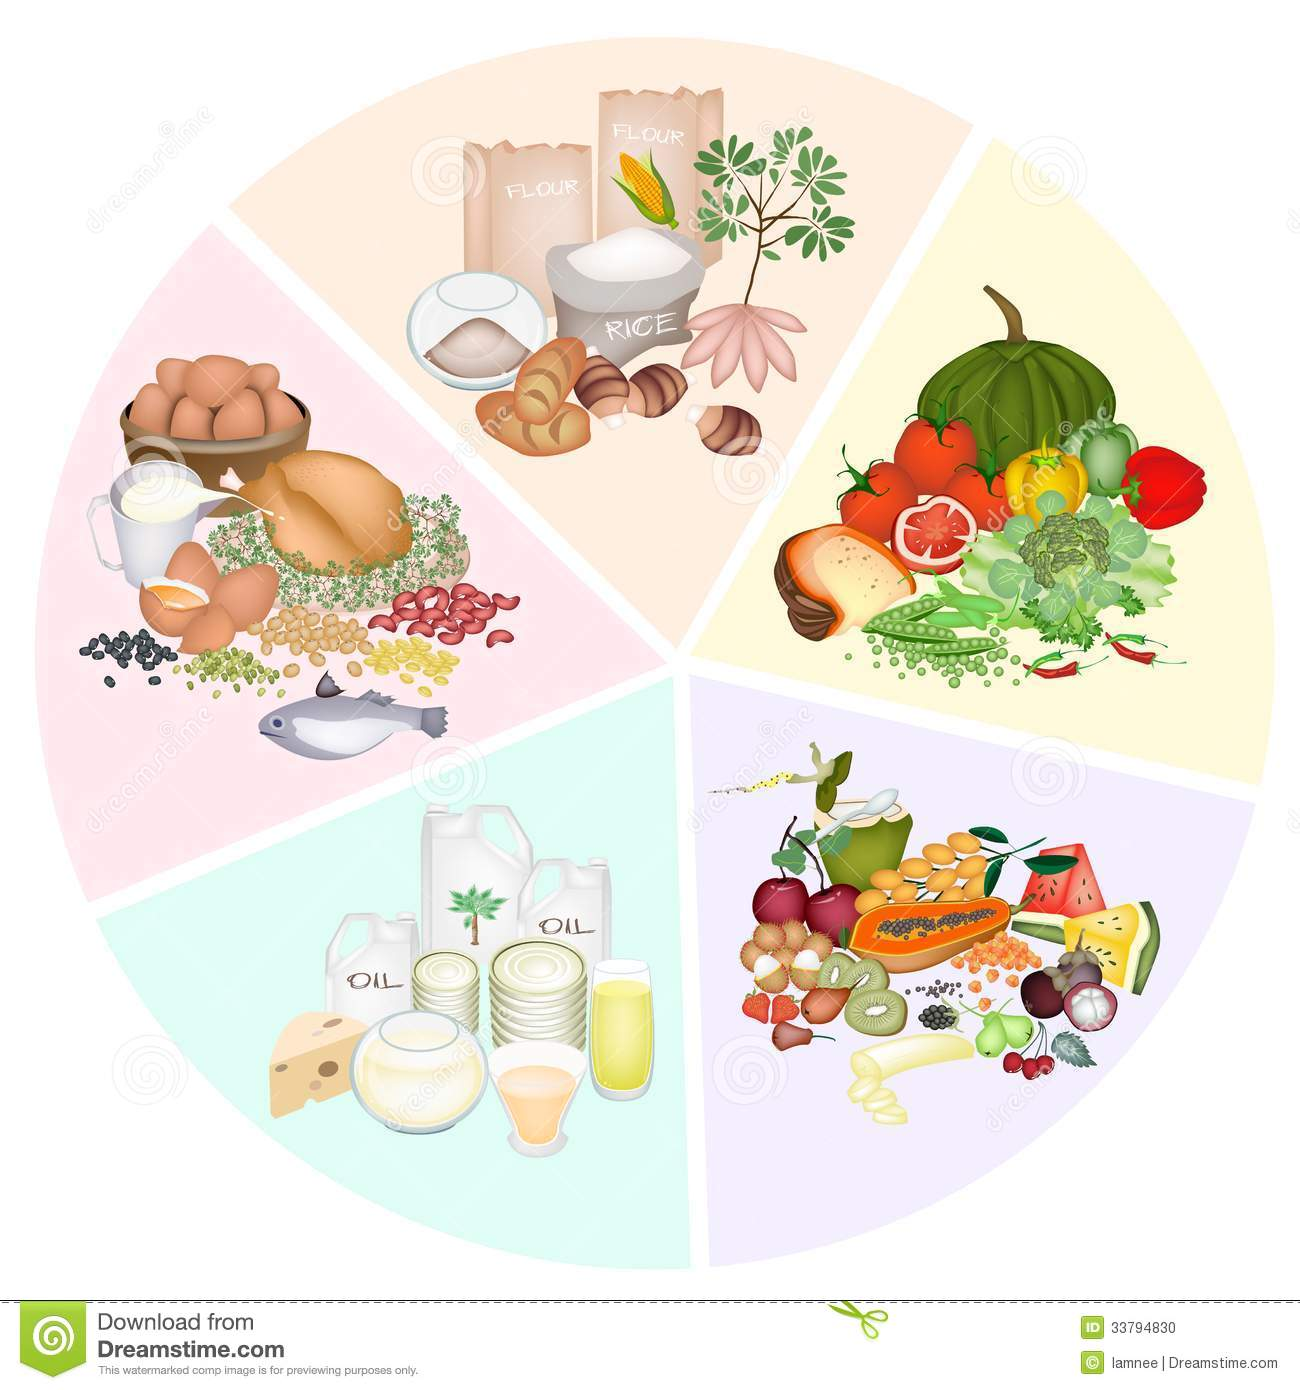 Nutritional Content Of Food Groups